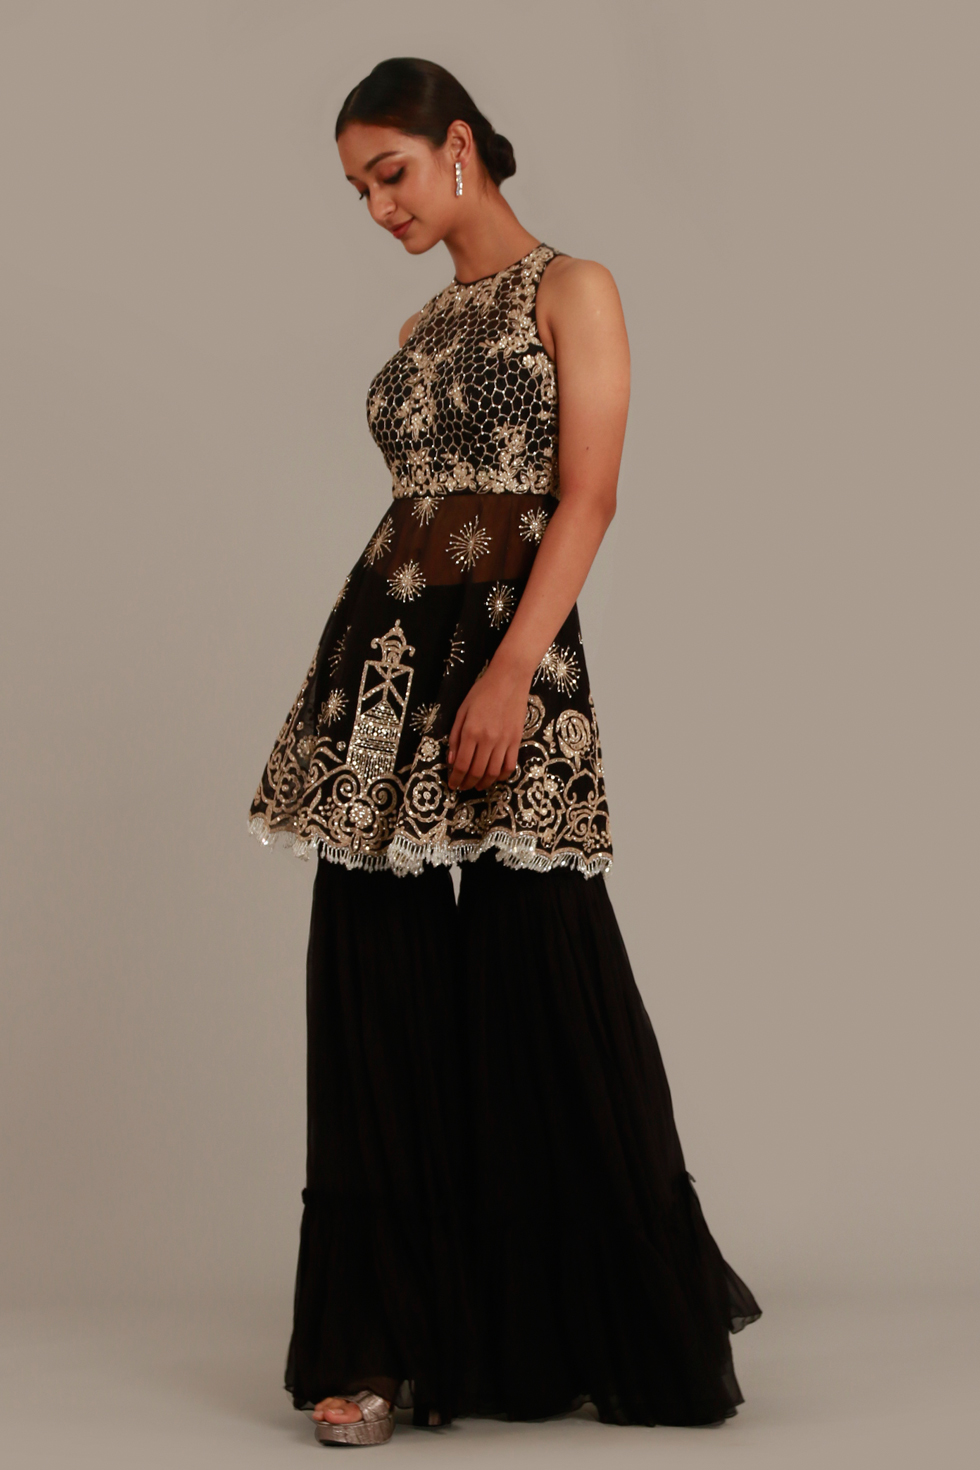 Raven black sharara set with incut peplum top and silver embellishments